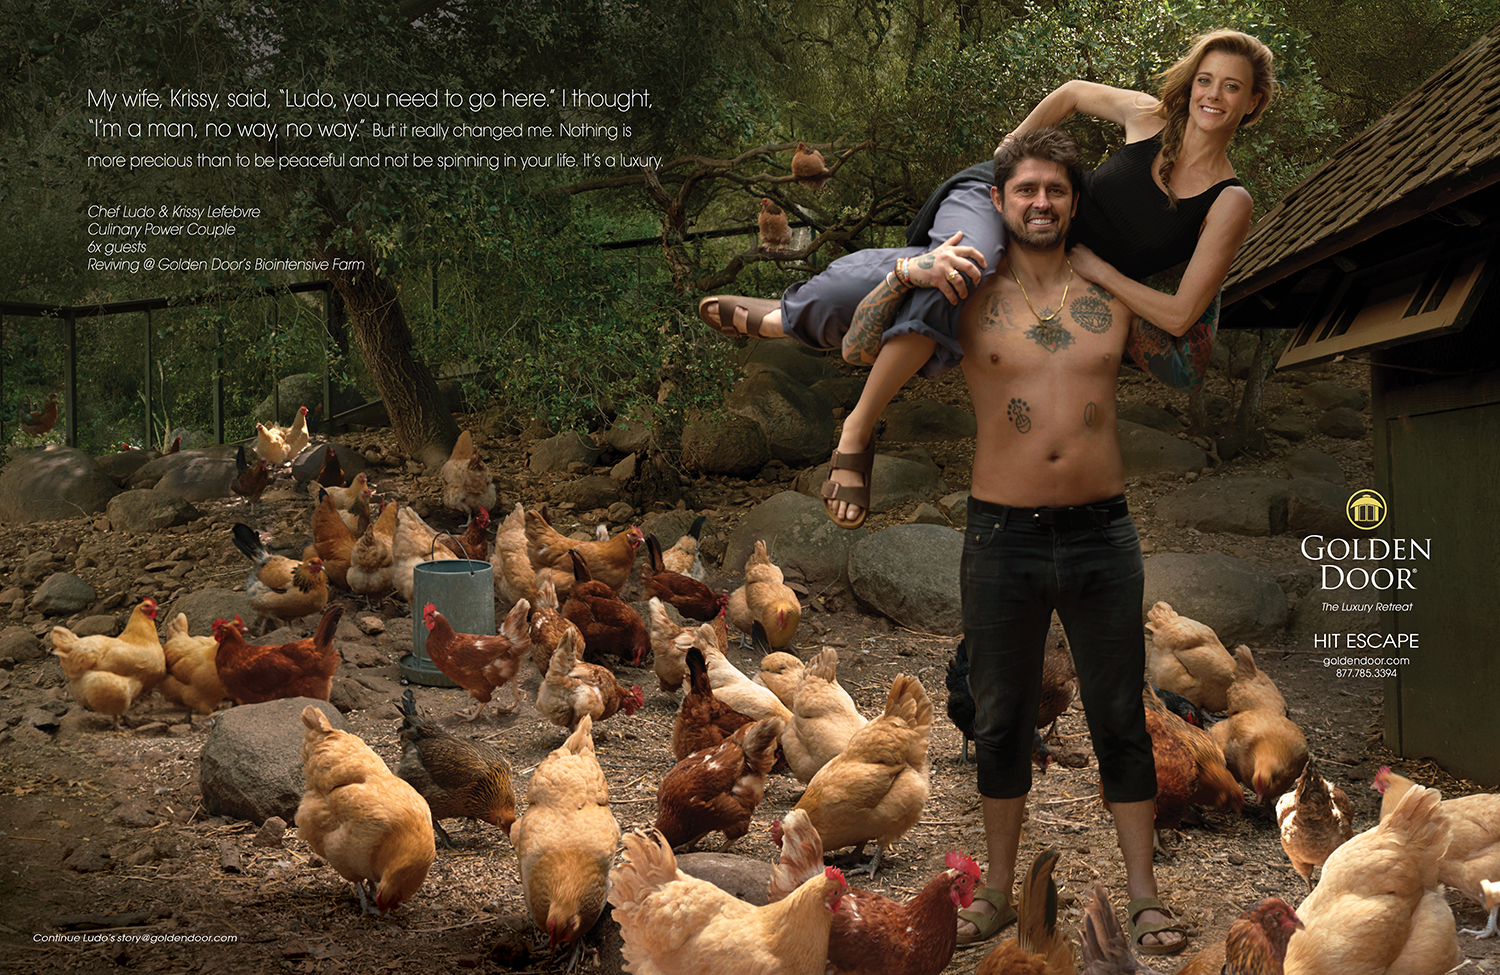 Culinary Power Couple, Chef Ludo and Krissy Lefebvre